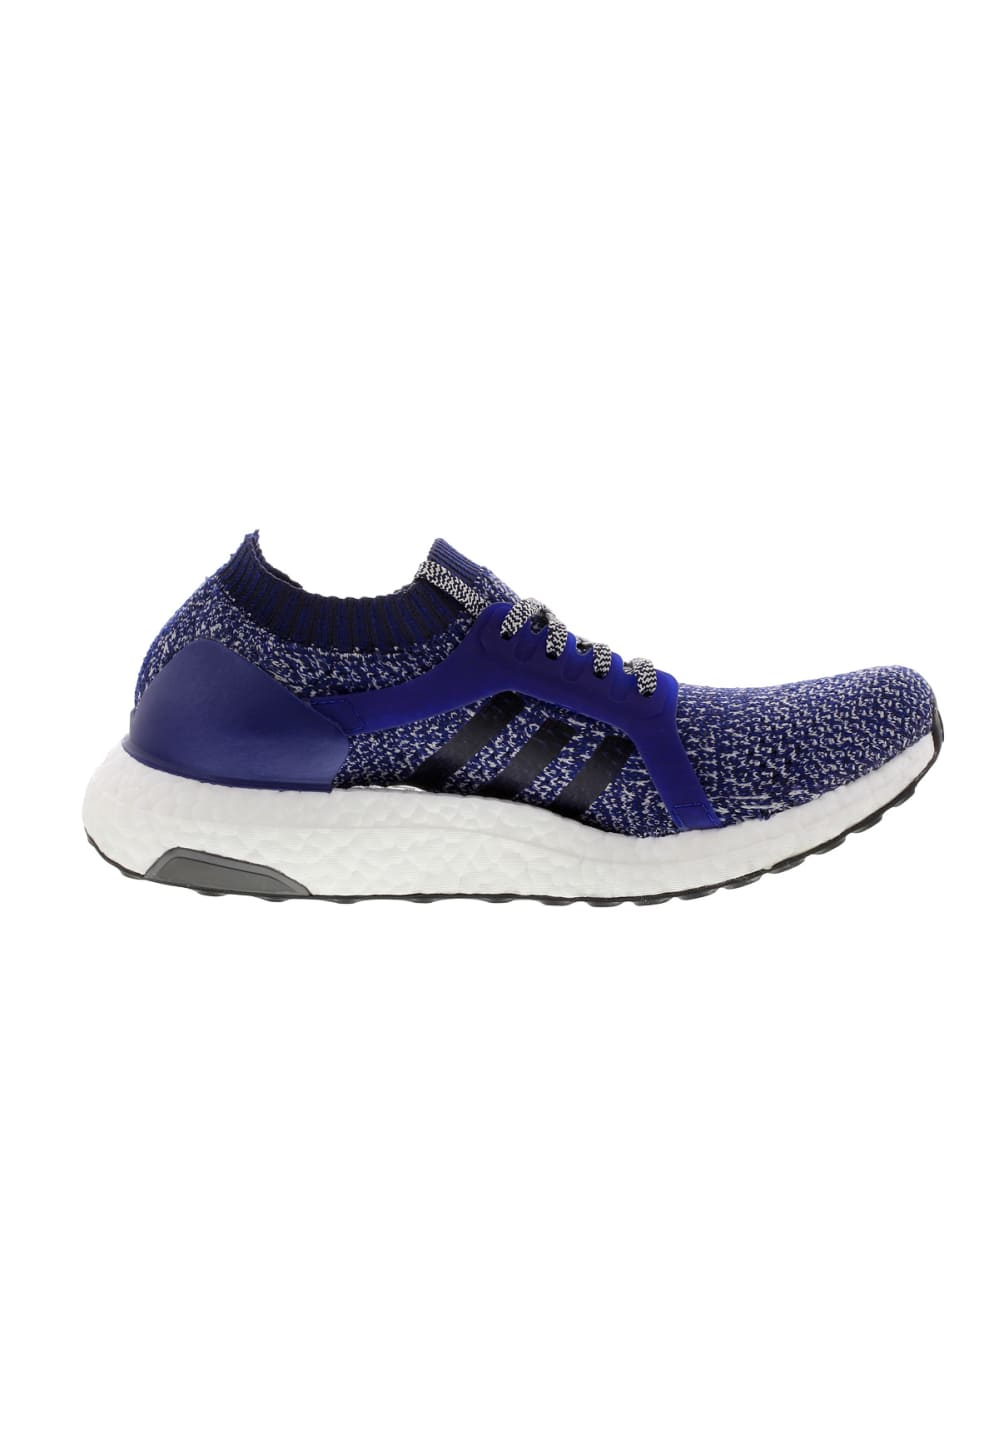 newest collection c2df4 e9d49 Next. -60%. adidas. UltraBOOST X - Chaussures running pour Femme